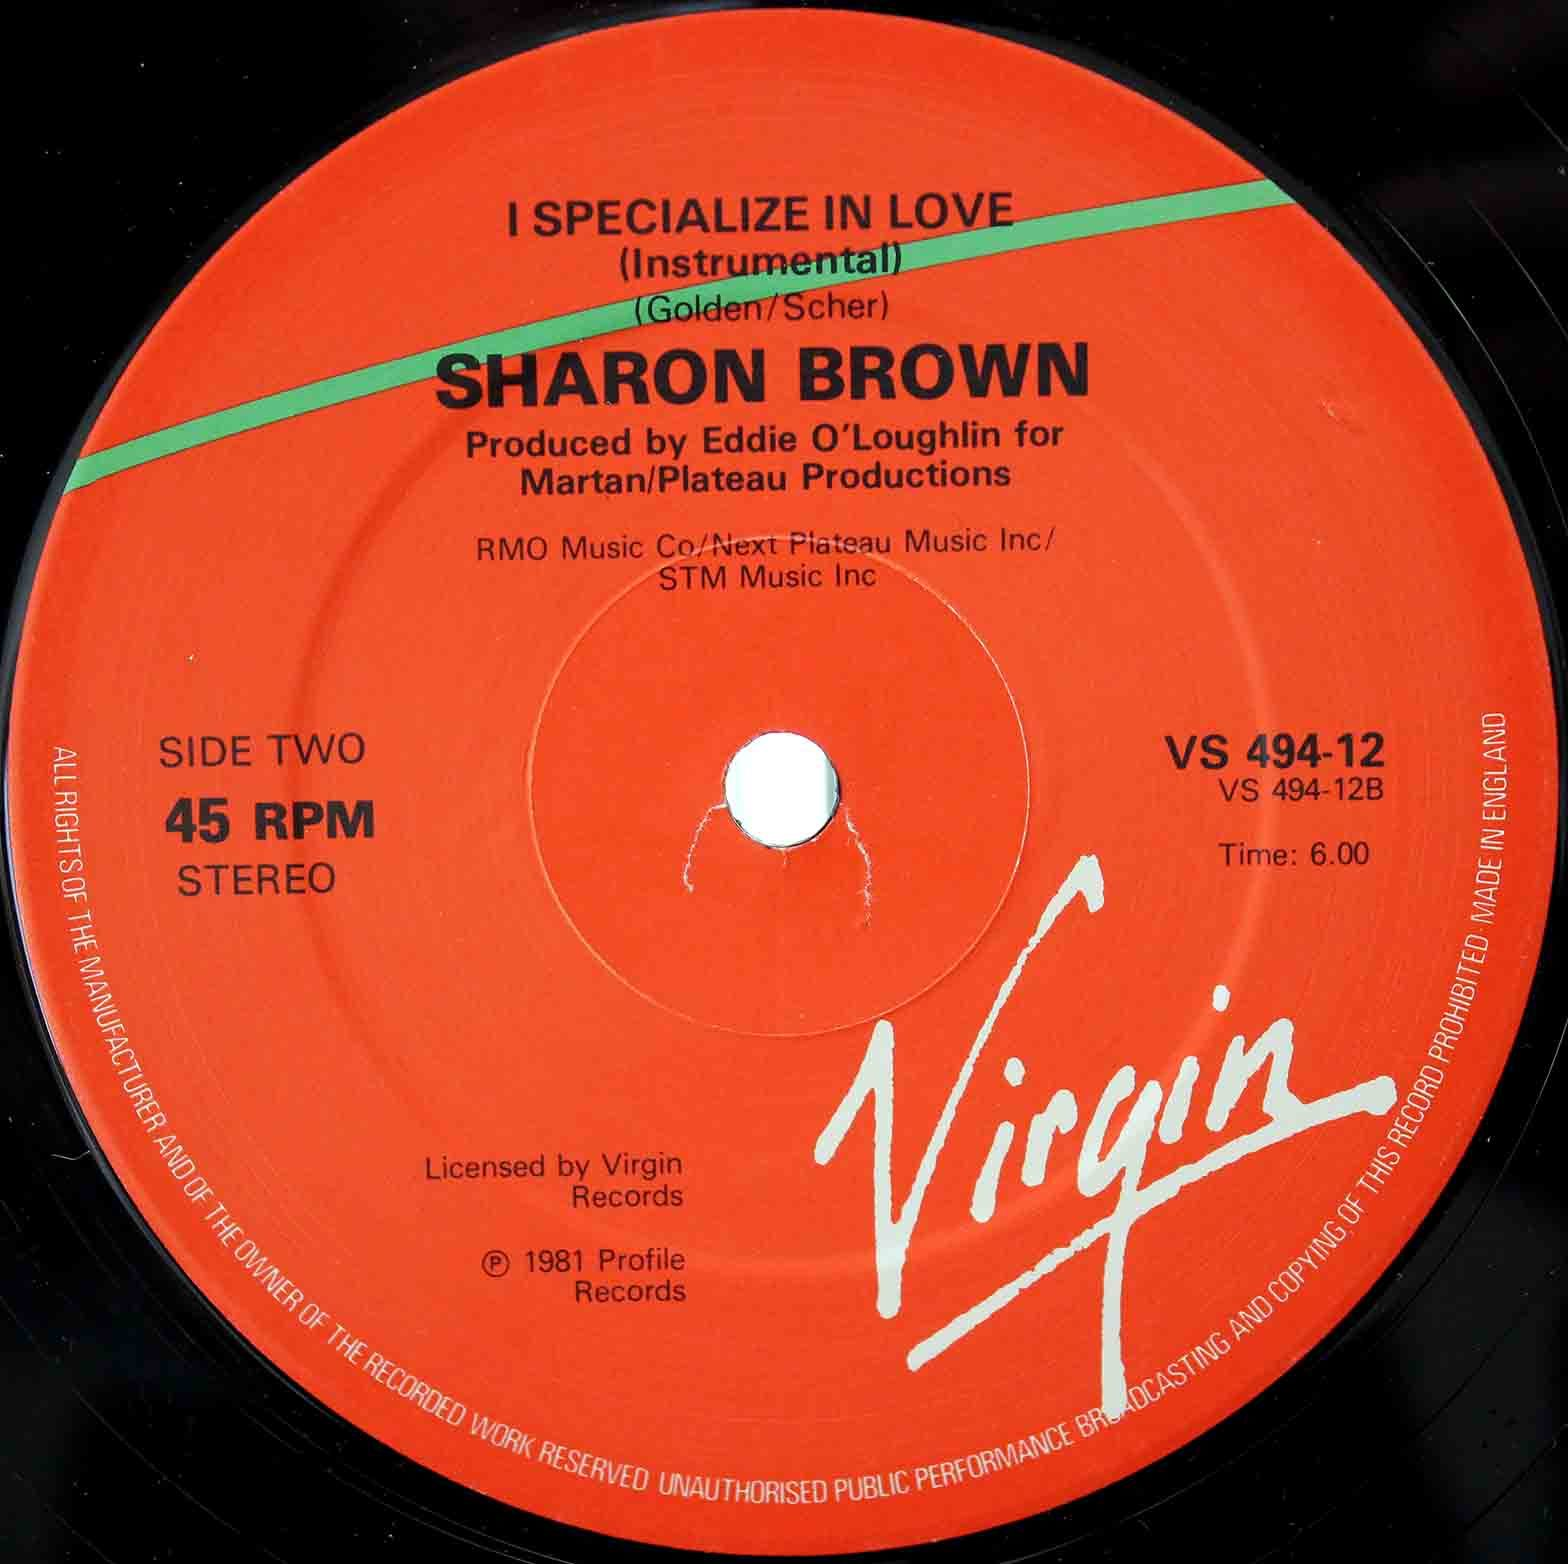 Sharon Brown – I Specialize In Love 04